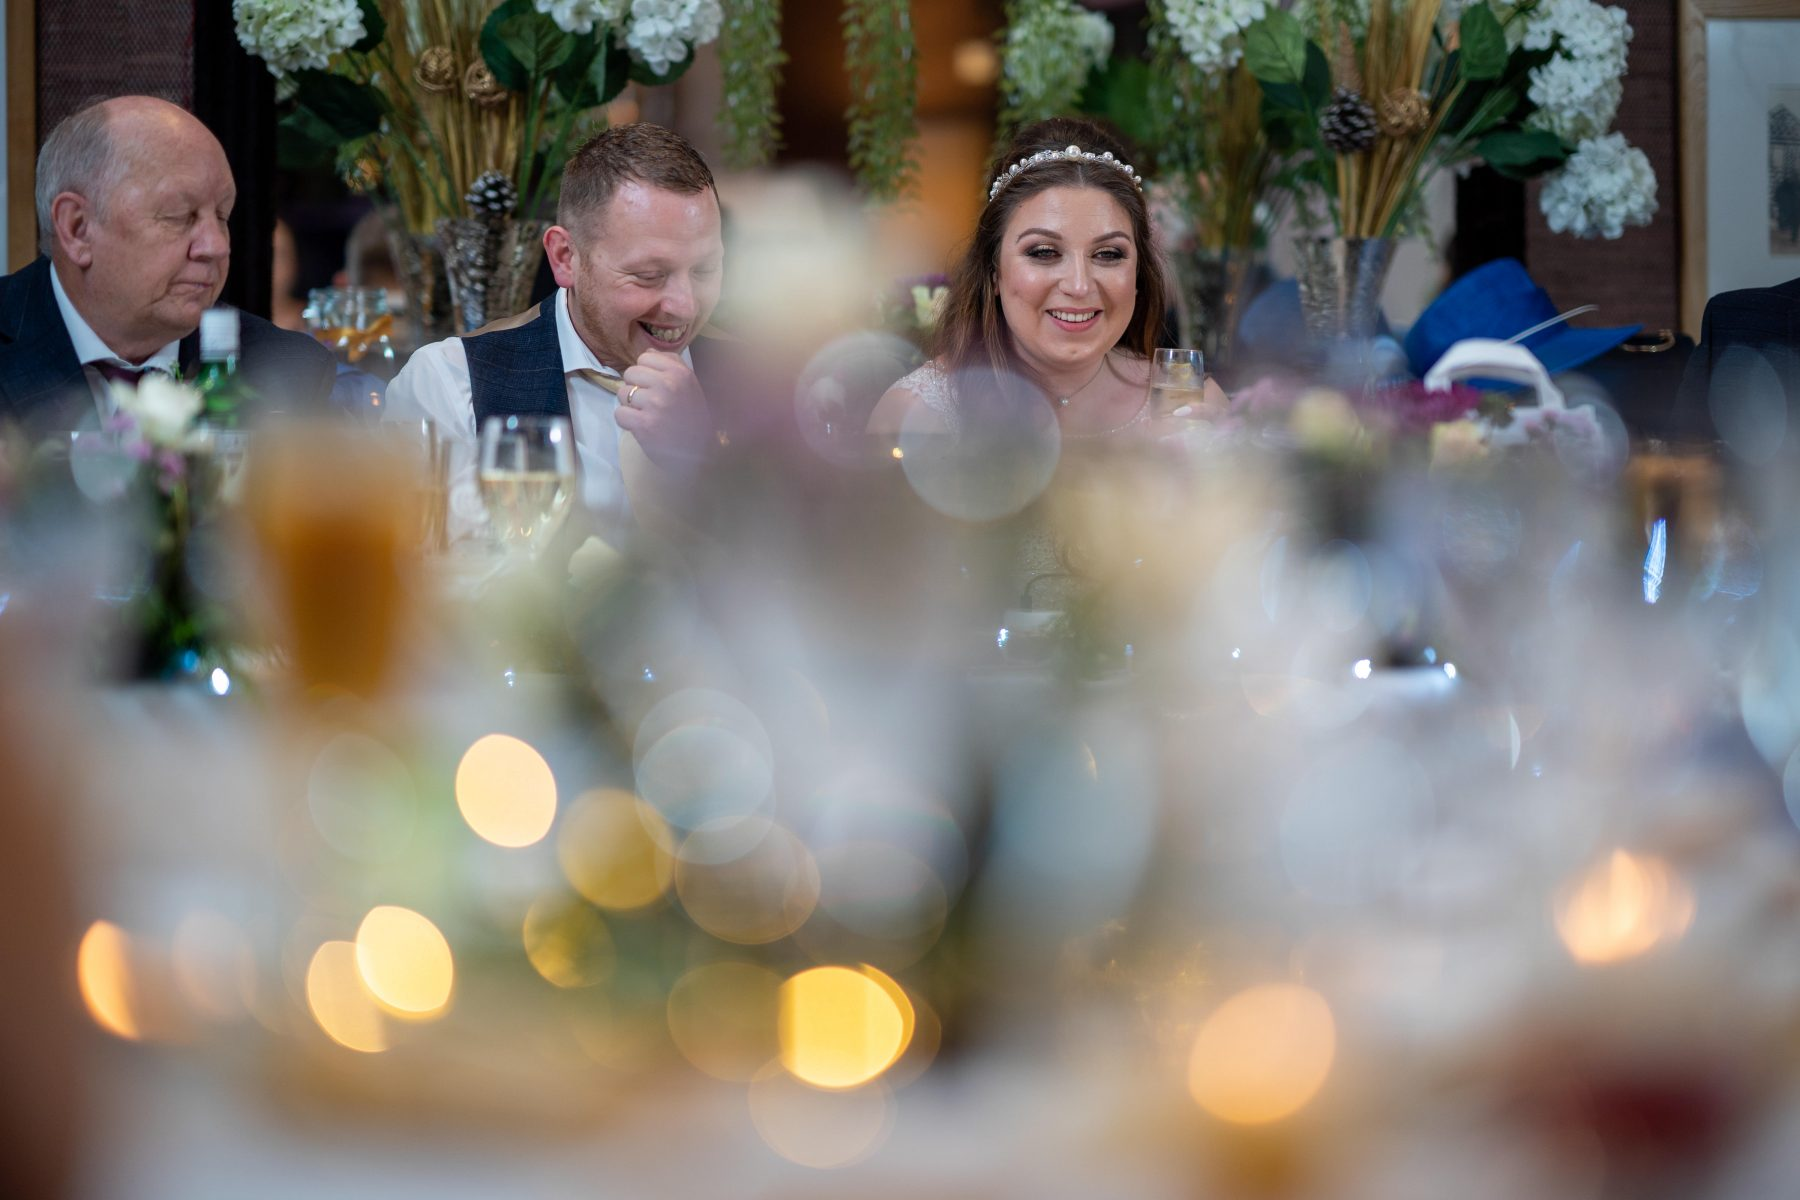 The bride and groom smile during the speeches